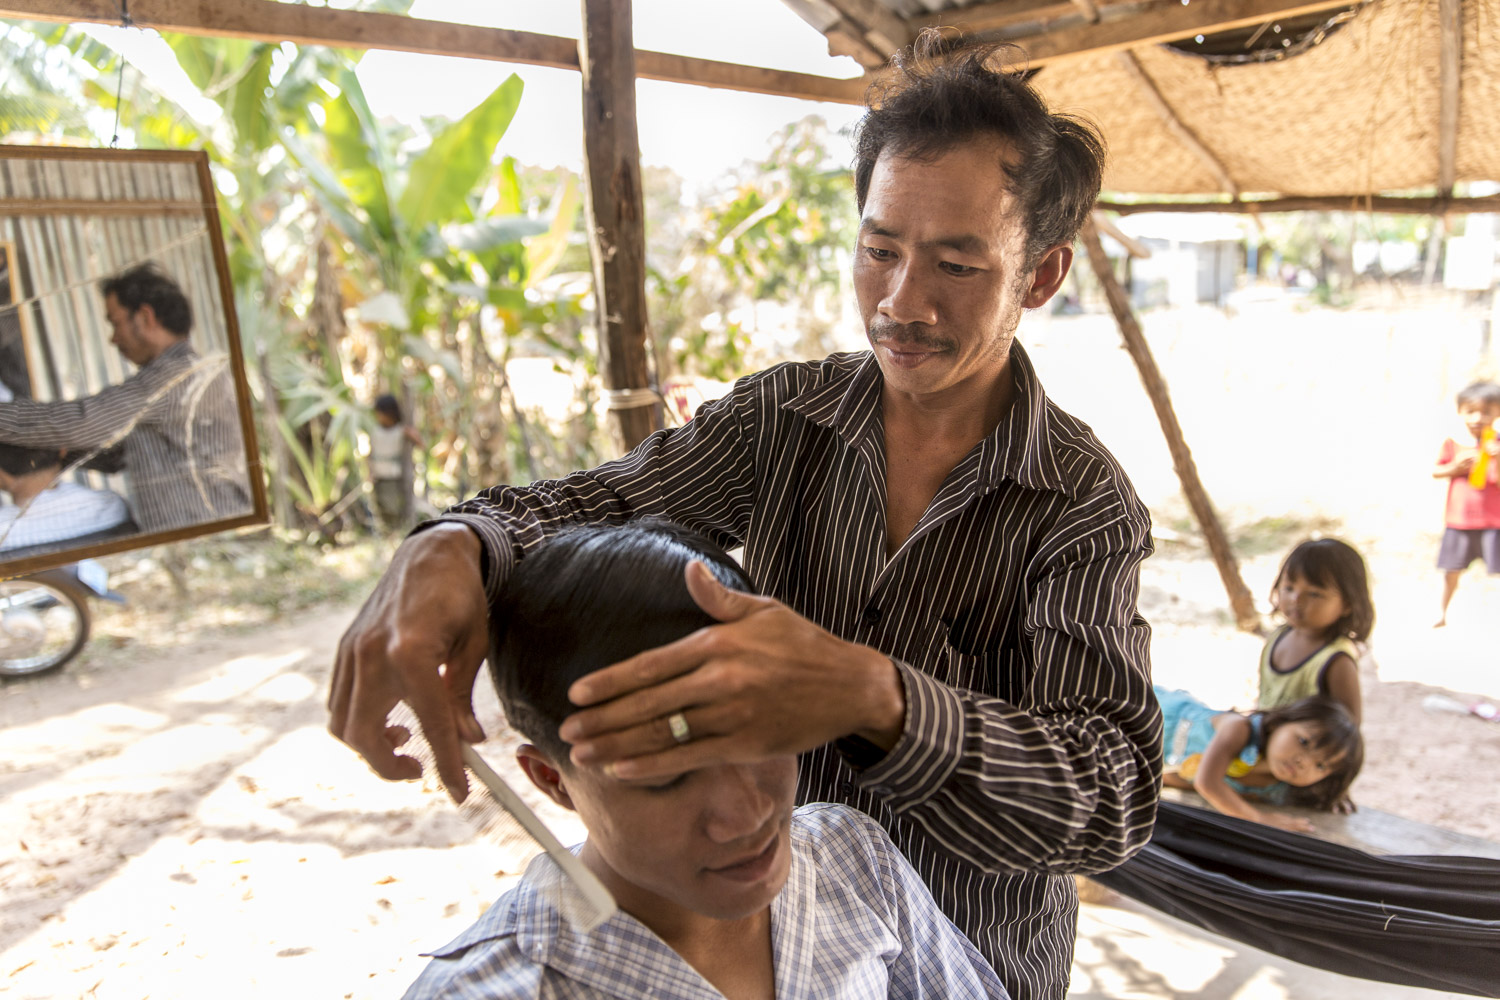 Kop is a barber training graduate from DDP, he has been operating his own barber shop since 2014. 37 yrs old.  Before opening his shop, Kop attended the DDP education program in Kampot and vocational training in Phnom Penh.  He lives with his mother and siblings, as well as a number of nieces and nephews.